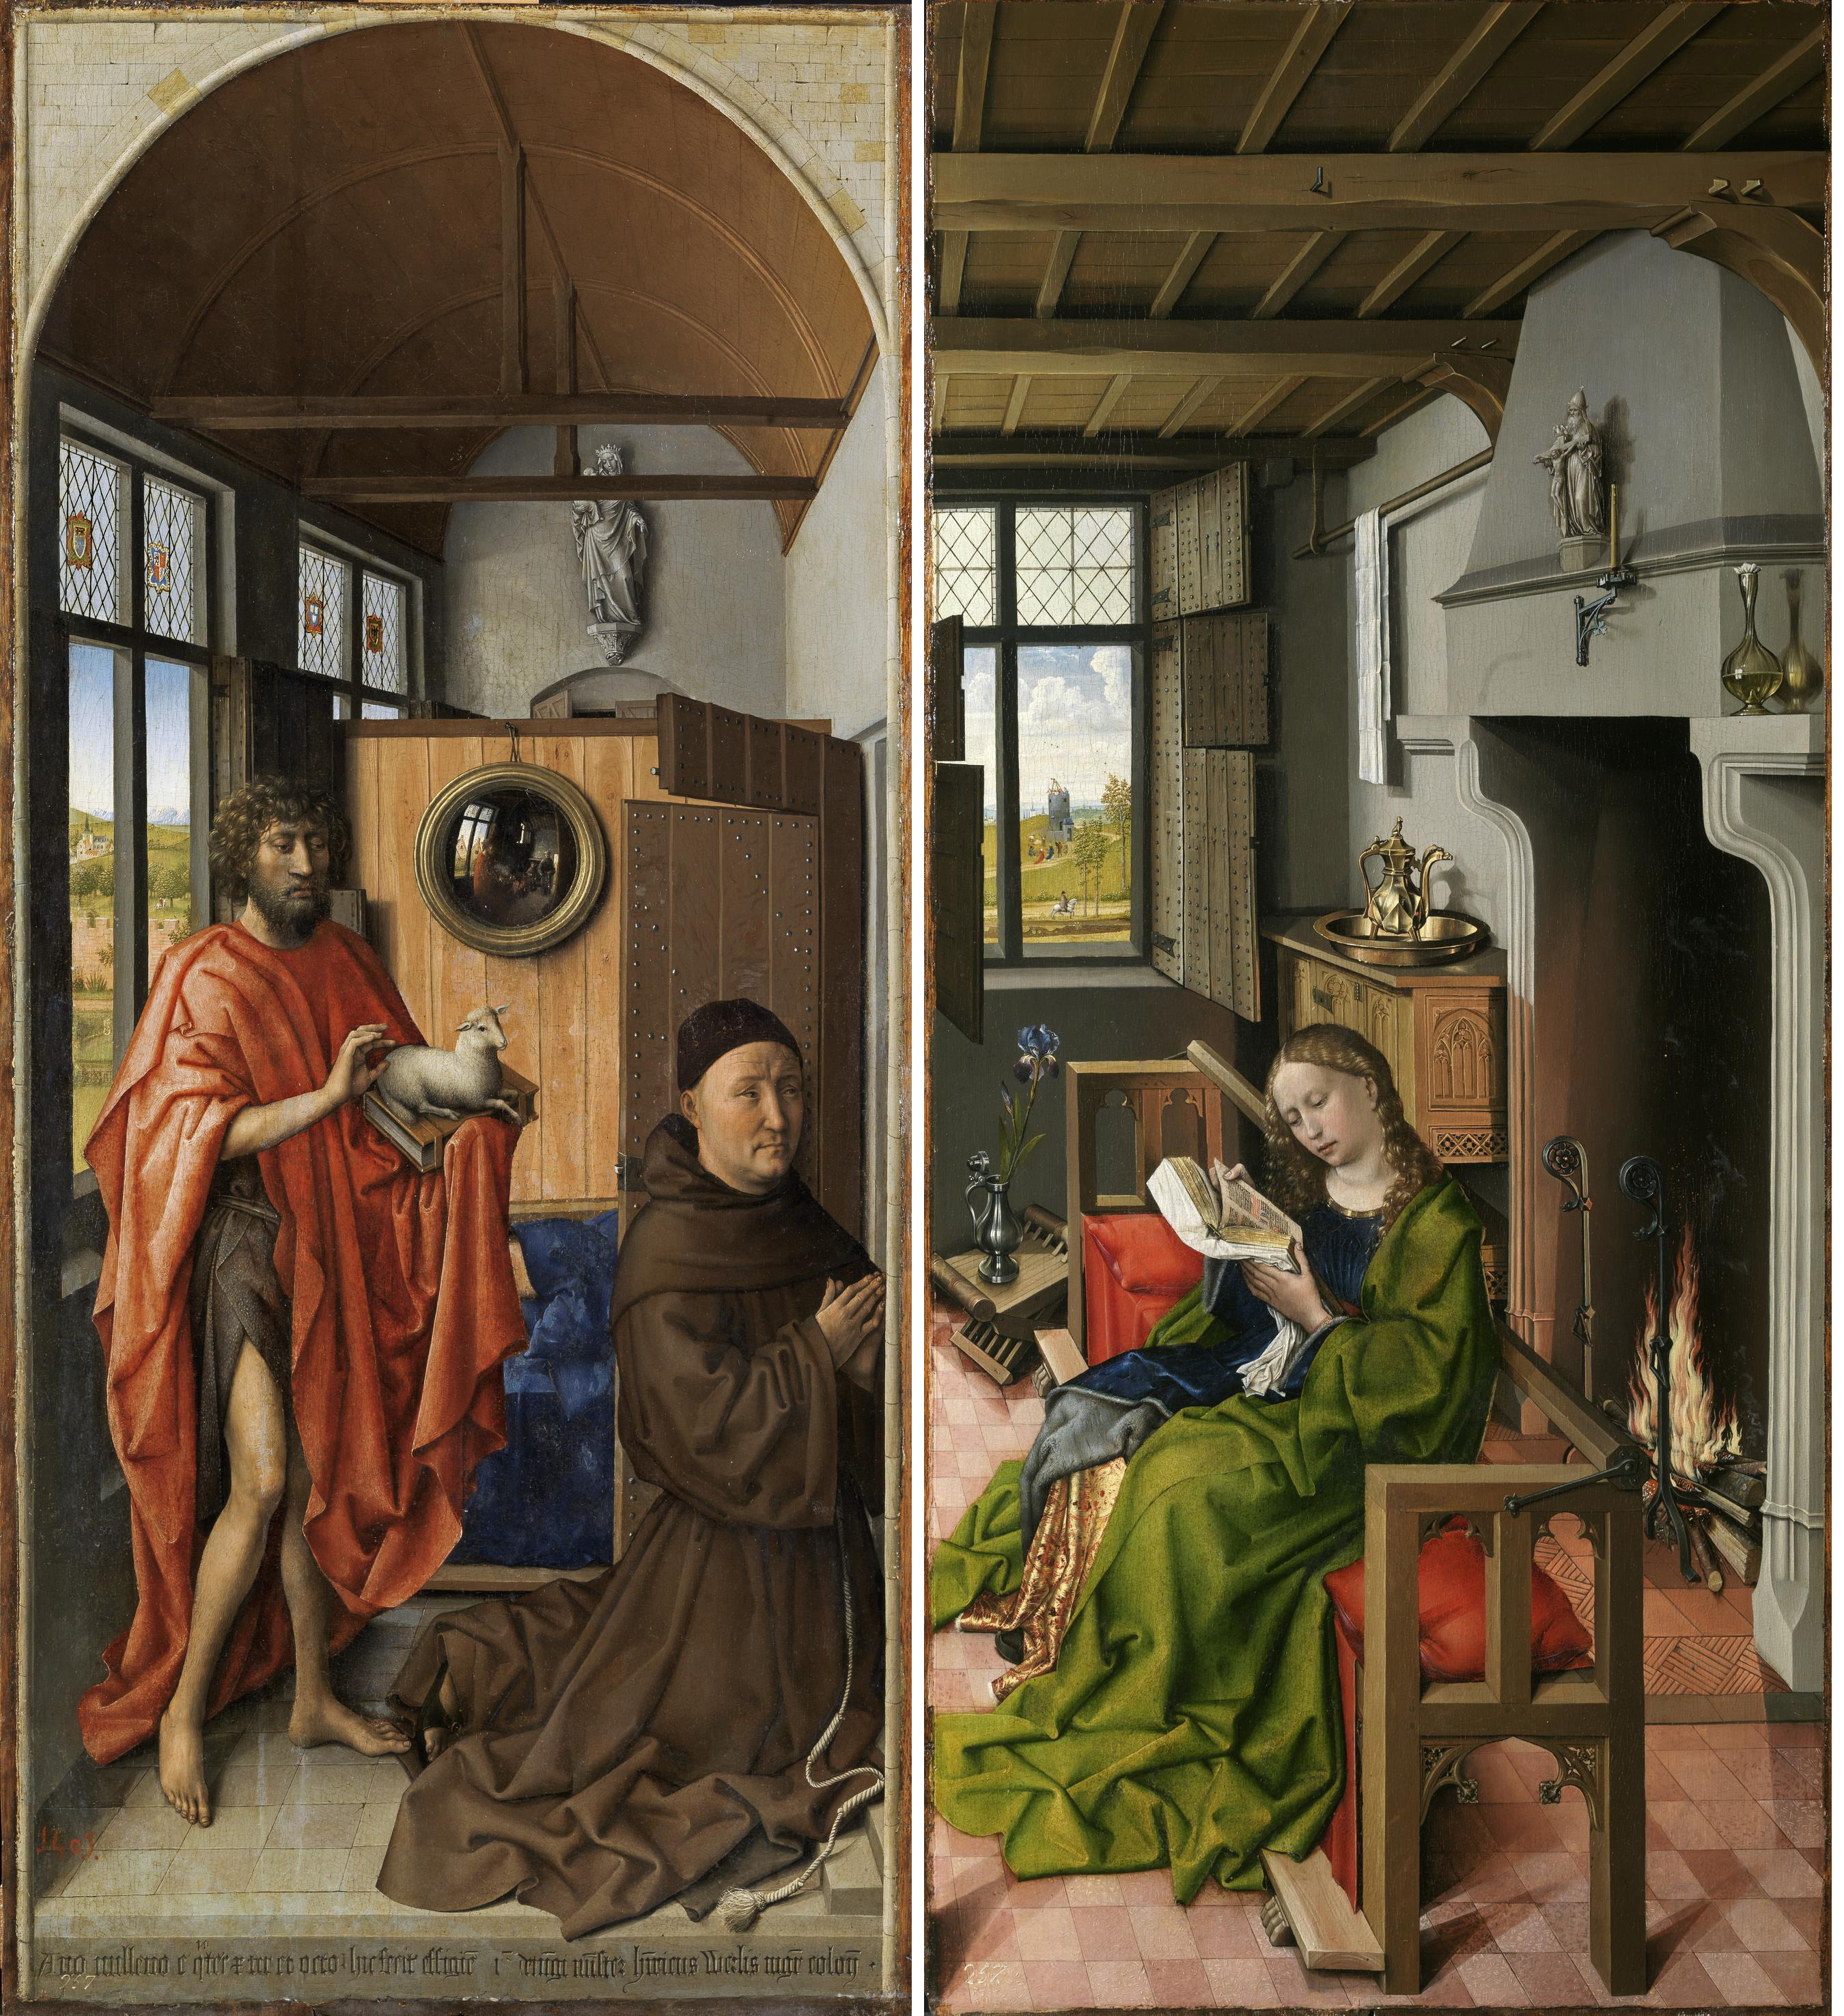 https://upload.wikimedia.org/wikipedia/commons/6/6e/Werl-Triptychons.jpg